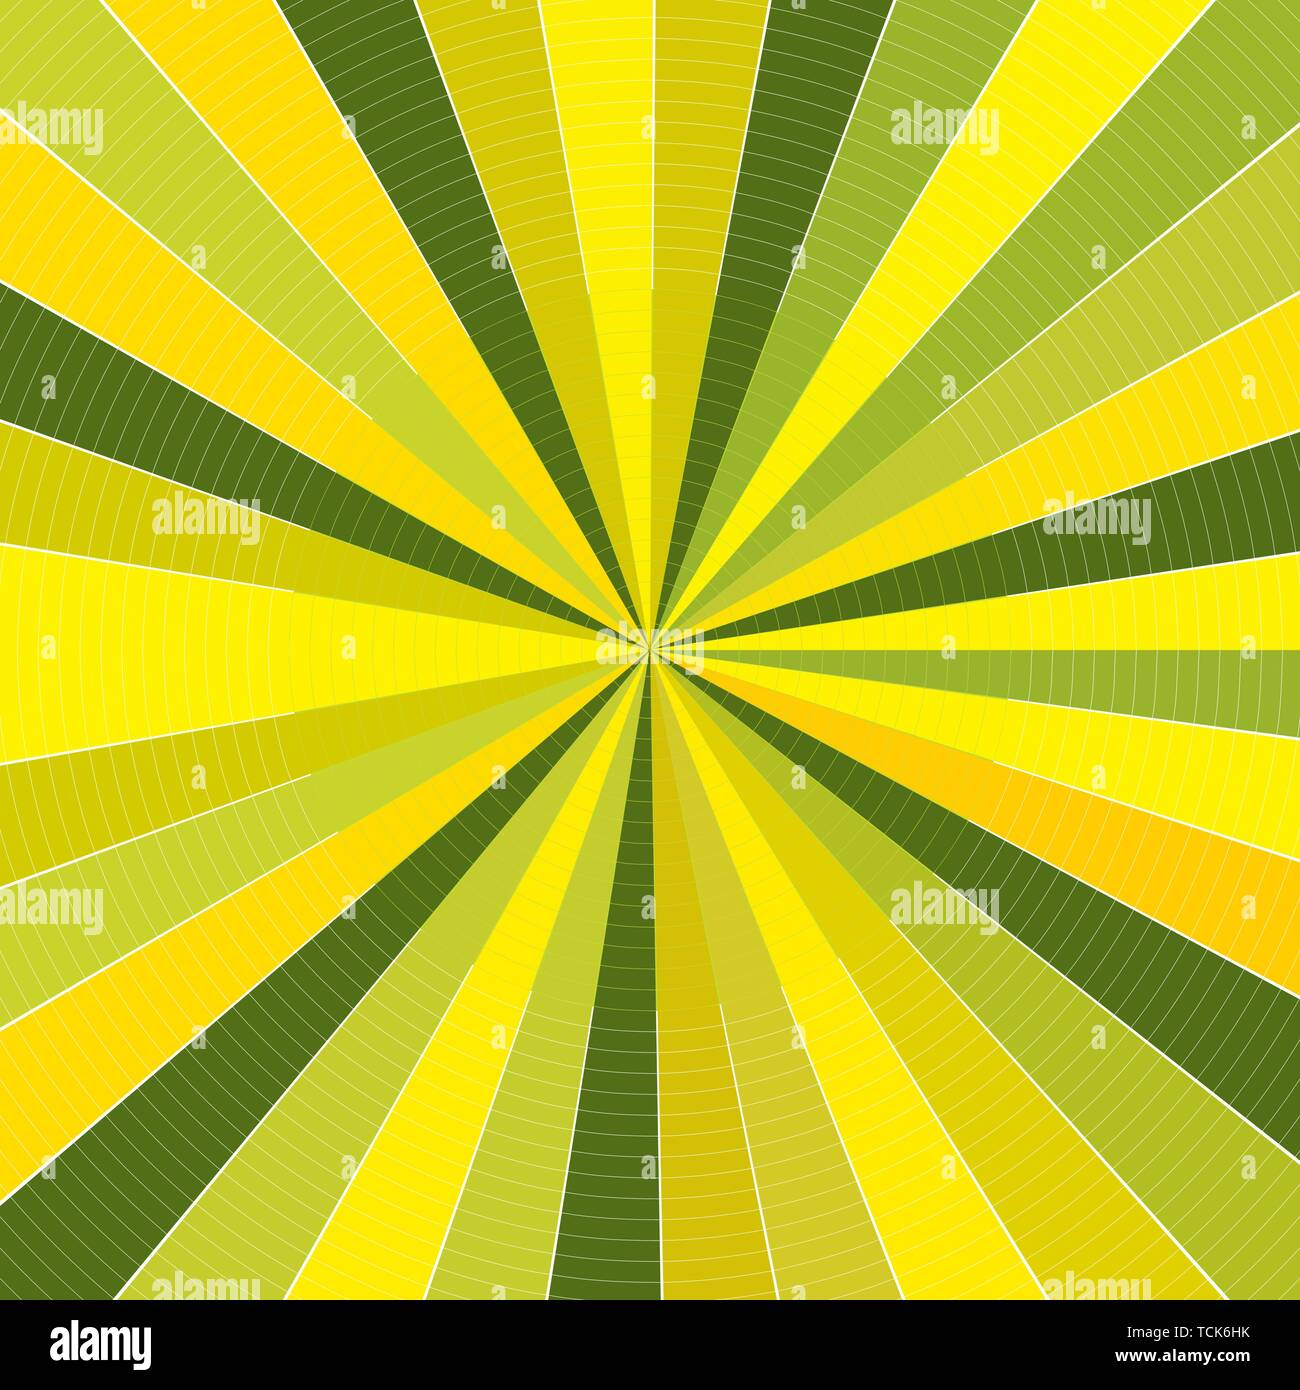 Colorful Abstract Sunburst Rays Fabric Interior Background Pattern Texture. Modern Concept In Vector .EPS file. No Raster. - Stock Image